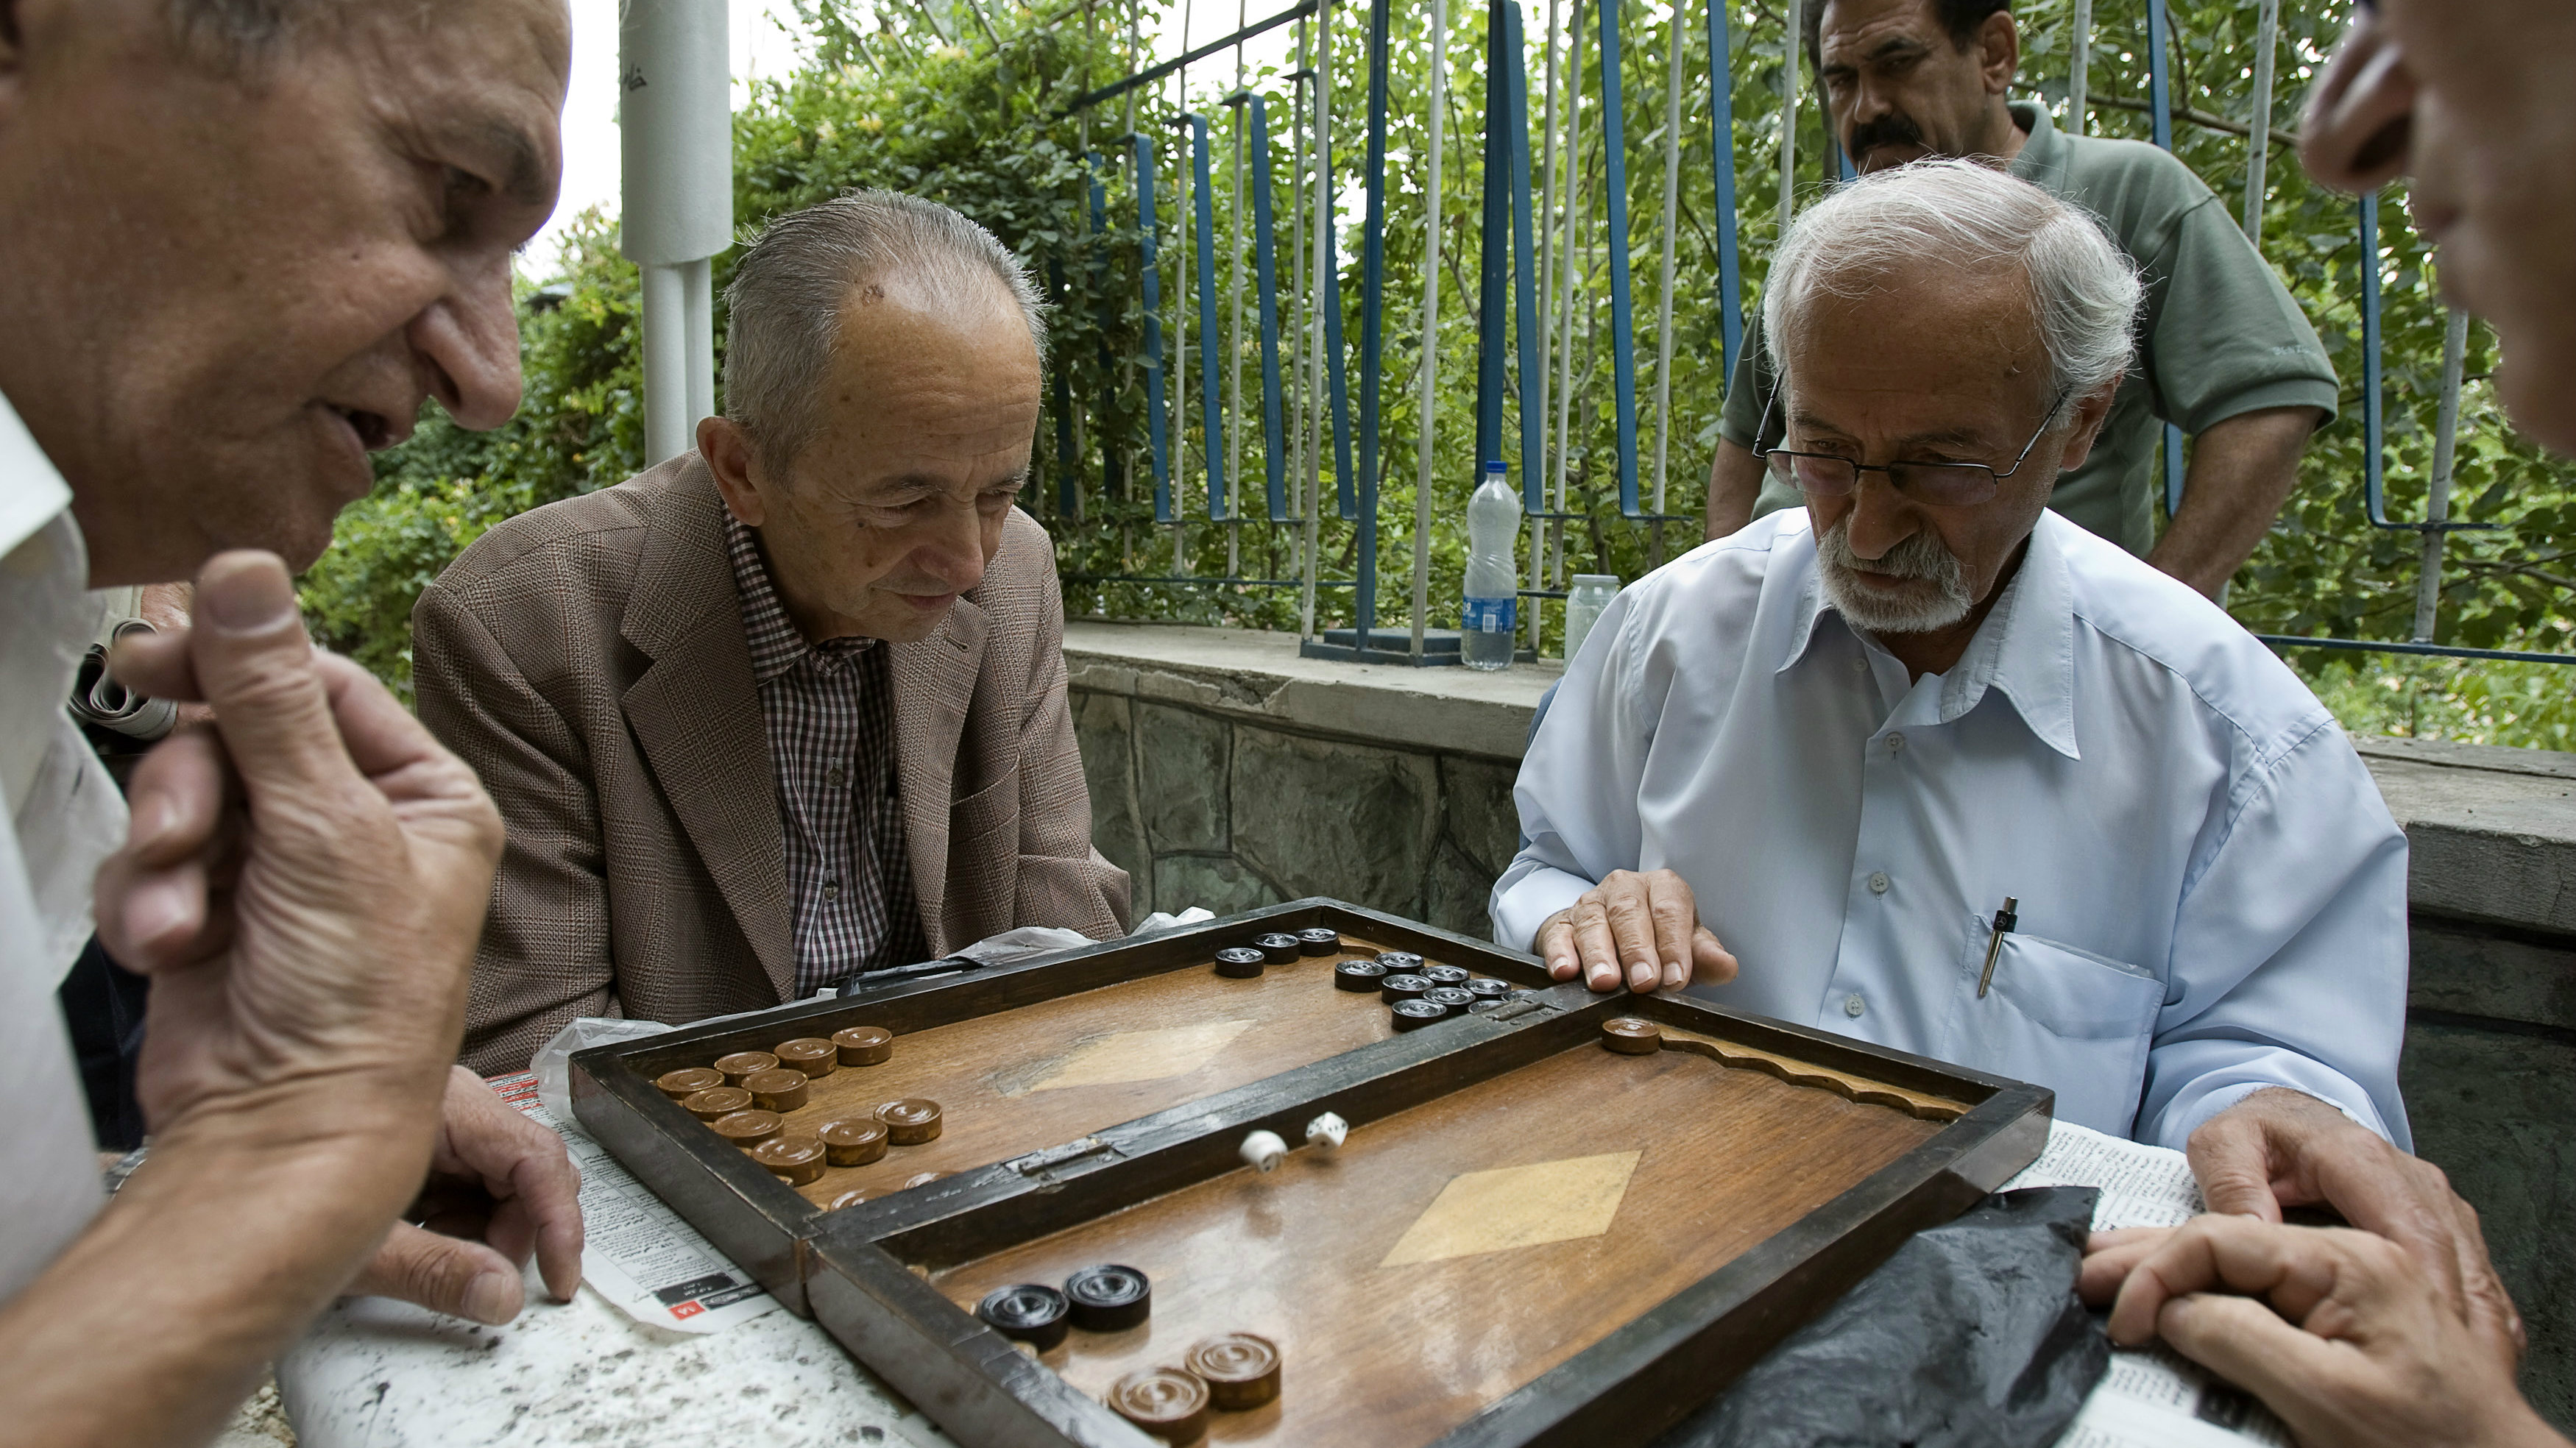 Men play backgammon in a park in Tehran June 9, 2009. Iranians vote on Friday in the 10th presidential election since the 1979 Islamic revolution which toppled the U.S.-backed Shah. Three decades after the revolution, Reuters invited some older Iranians who witnessed the Shah's overthrow to look back at the changes they have lived through. To match feature IRAN-ELECTION/REVOLUTION REUTERSMen play backgammon in a park in Tehran June 9, 2009. Iranians vote on Friday in the 10th presidential election since the 1979 Islamic revolution which toppled the U.S.-backed Shah. Three decades after the revolution, Reuters invited some older Iranians who witnessed the Shah's overthrow to look back at the changes they have lived through. To match feature IRAN-ELECTION/REVOLUTION REUTERS/Raheb Homavandi